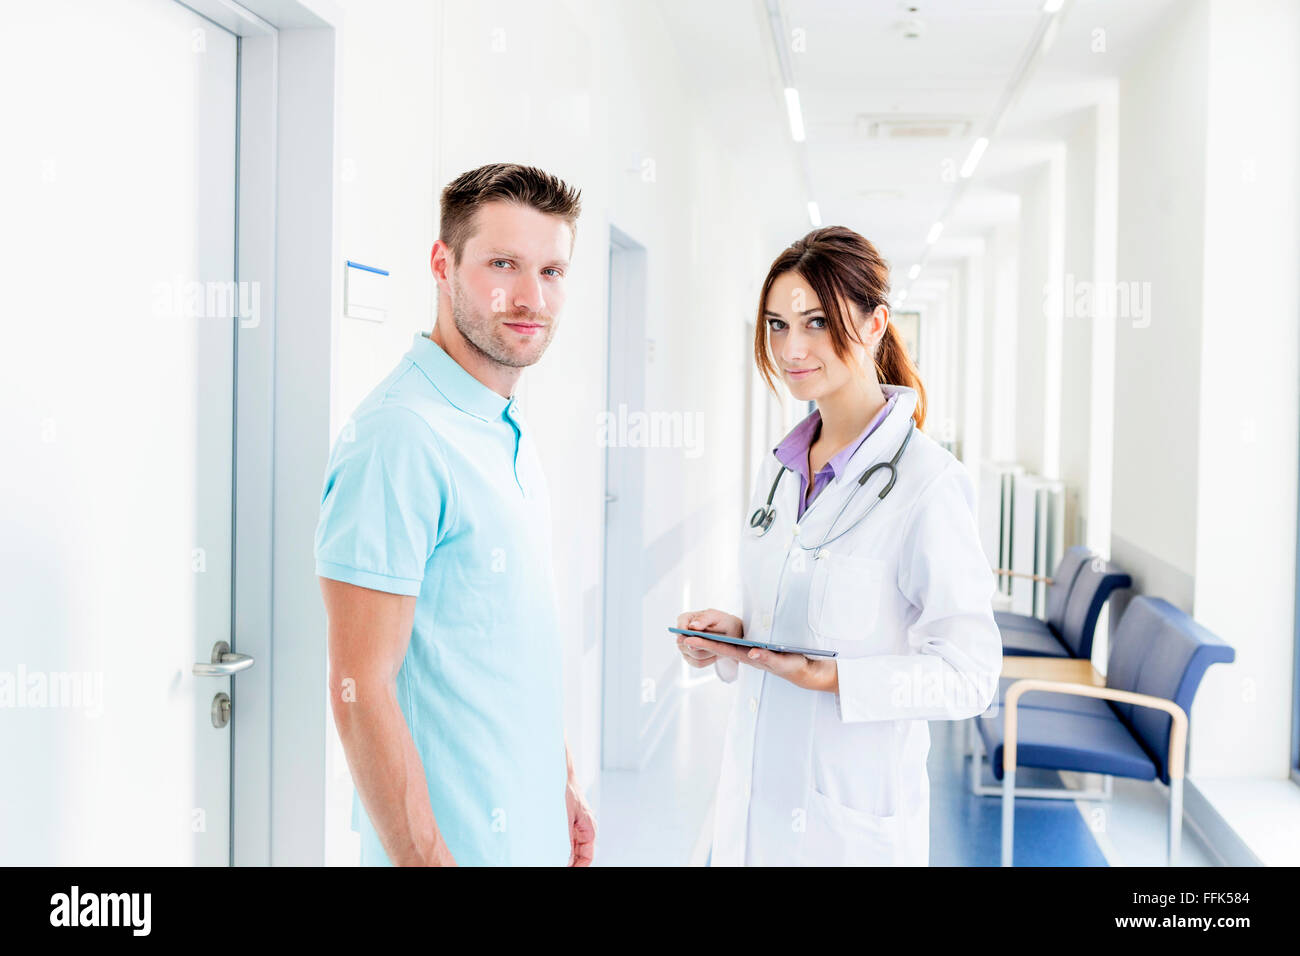 Female doctor and coworker standing in hospital corridor - Stock Image